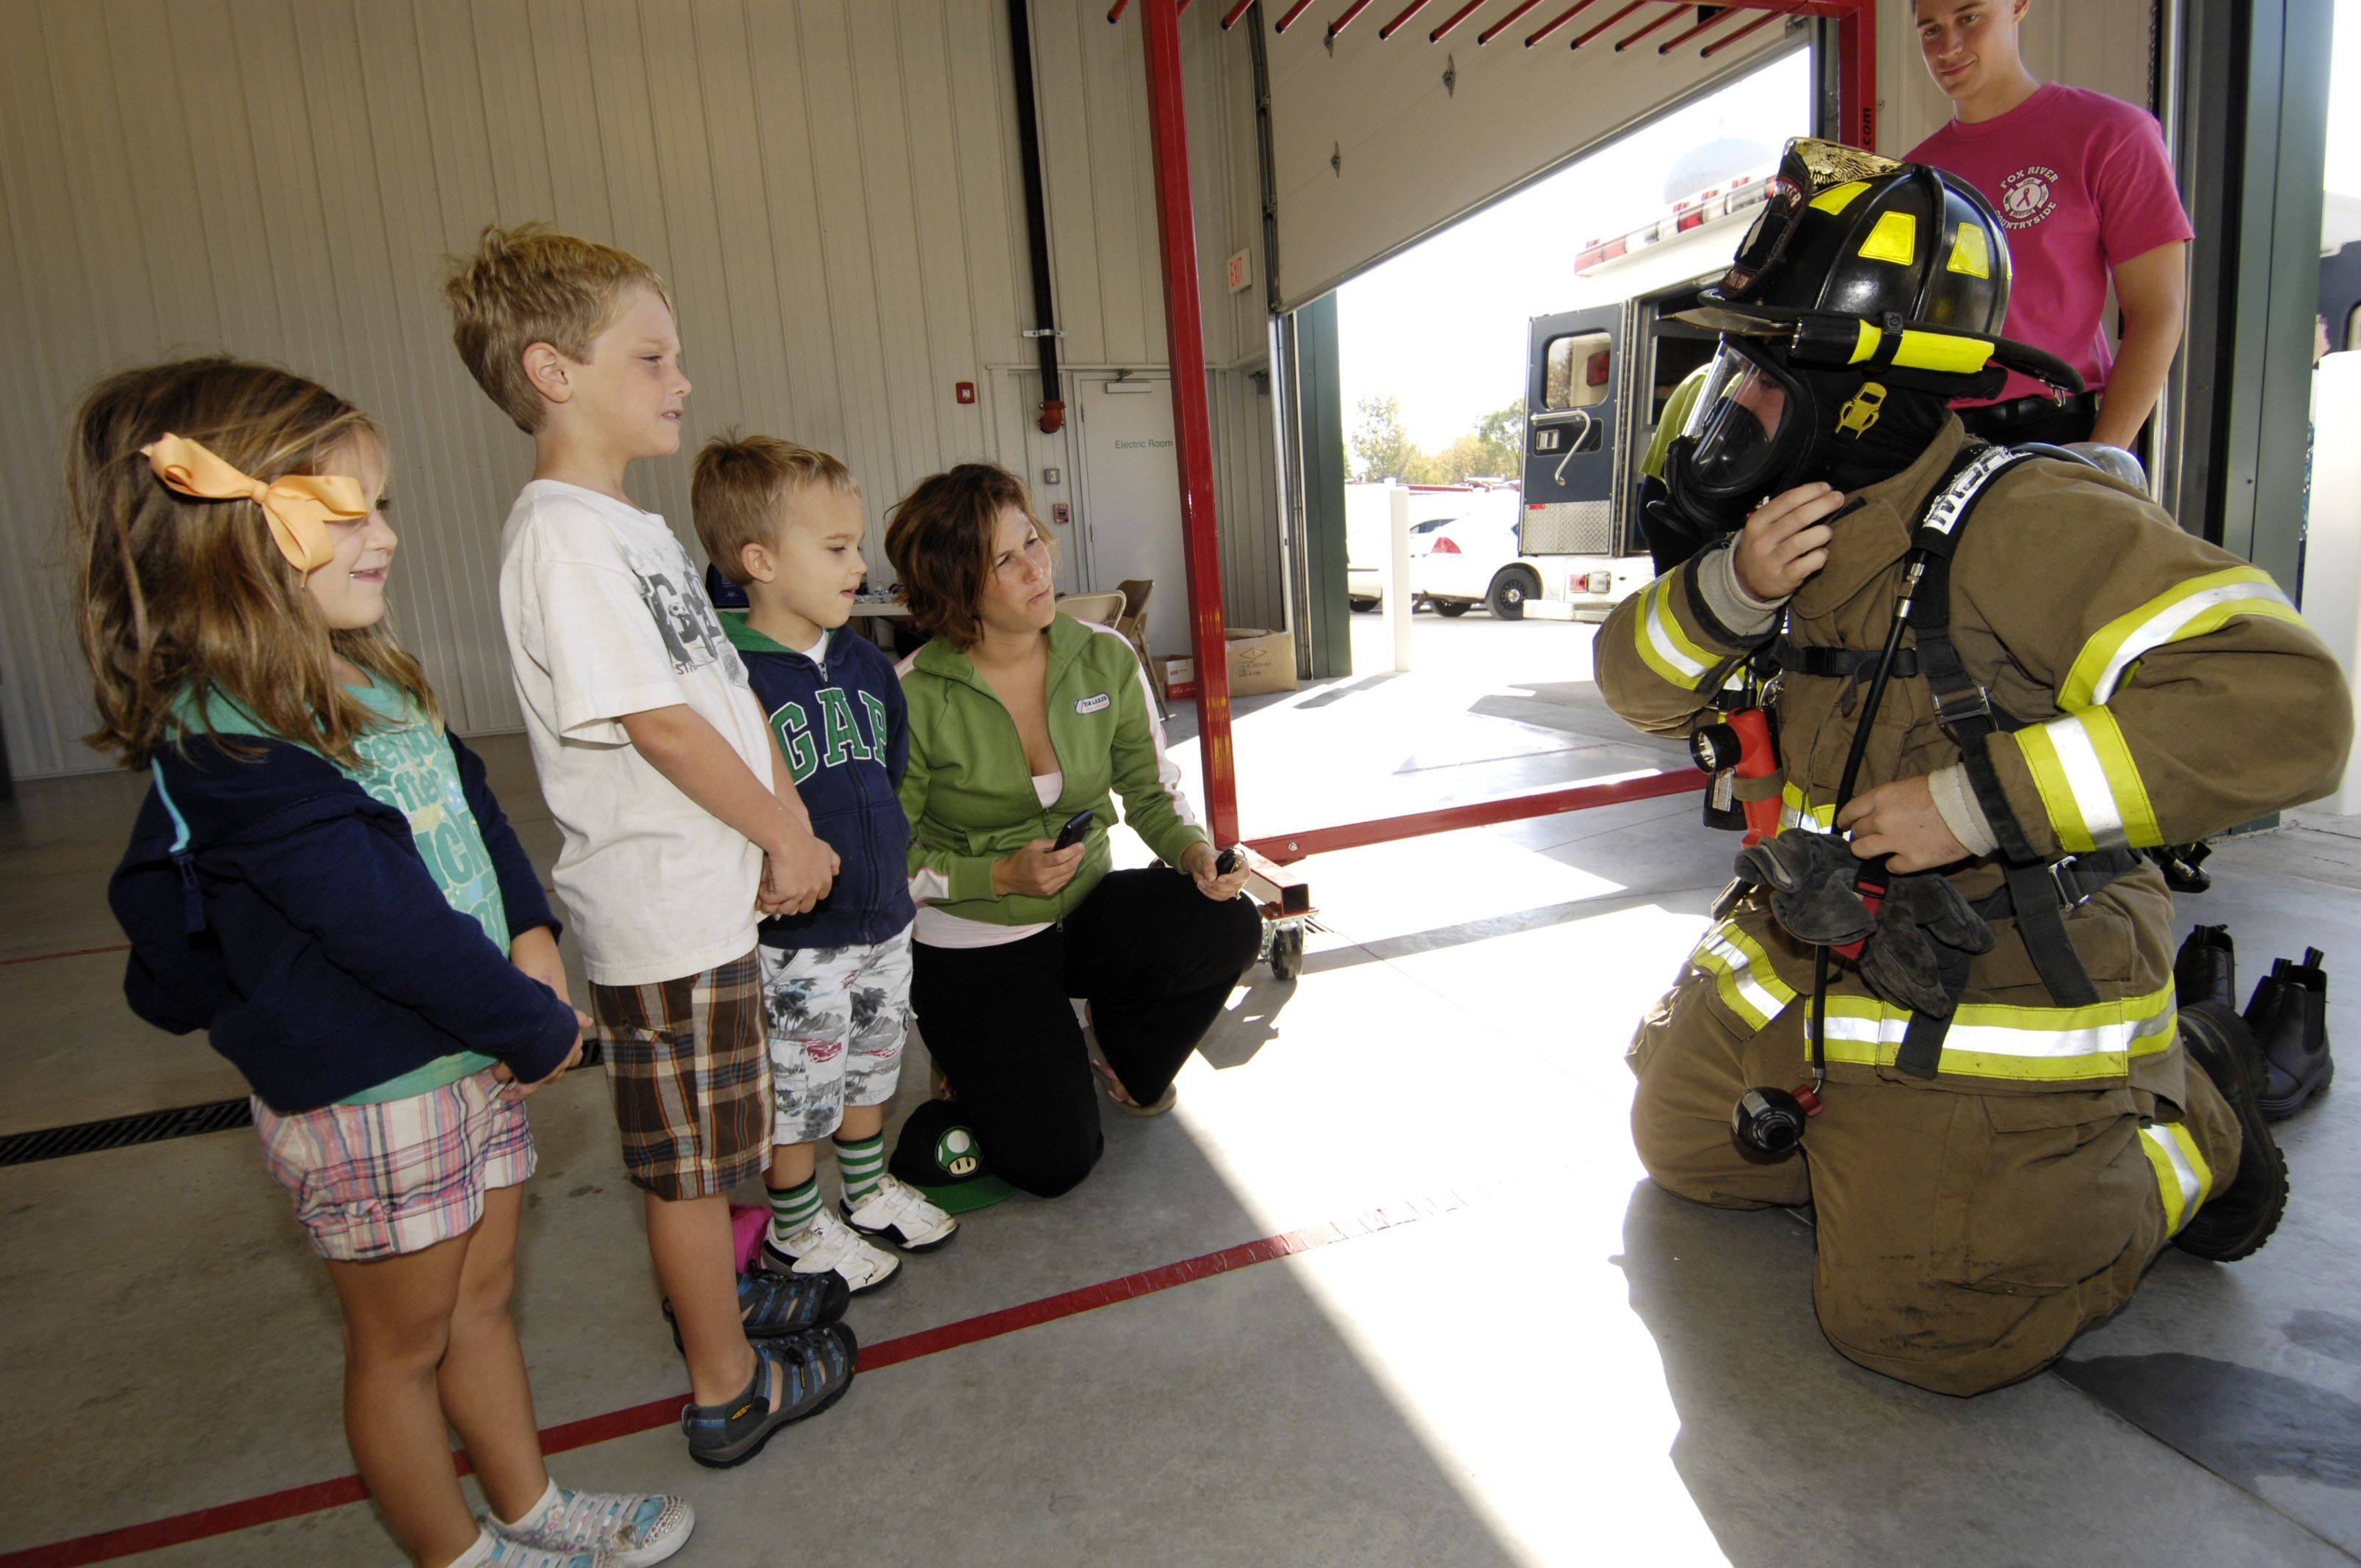 Lilly Webbe, 5, Ryan Freeding, 3, Brett Webbe, 8 and Crissy Webbe watch as firefighter Scott Lyng puts on his gear during the Fox River & Countryside Fire/Rescue District open house on Sunday. The event took place in conjunction with the Remembrance Rescue Project that helps to educate, honor and remember firefighters lost in the 9/11 attacks.